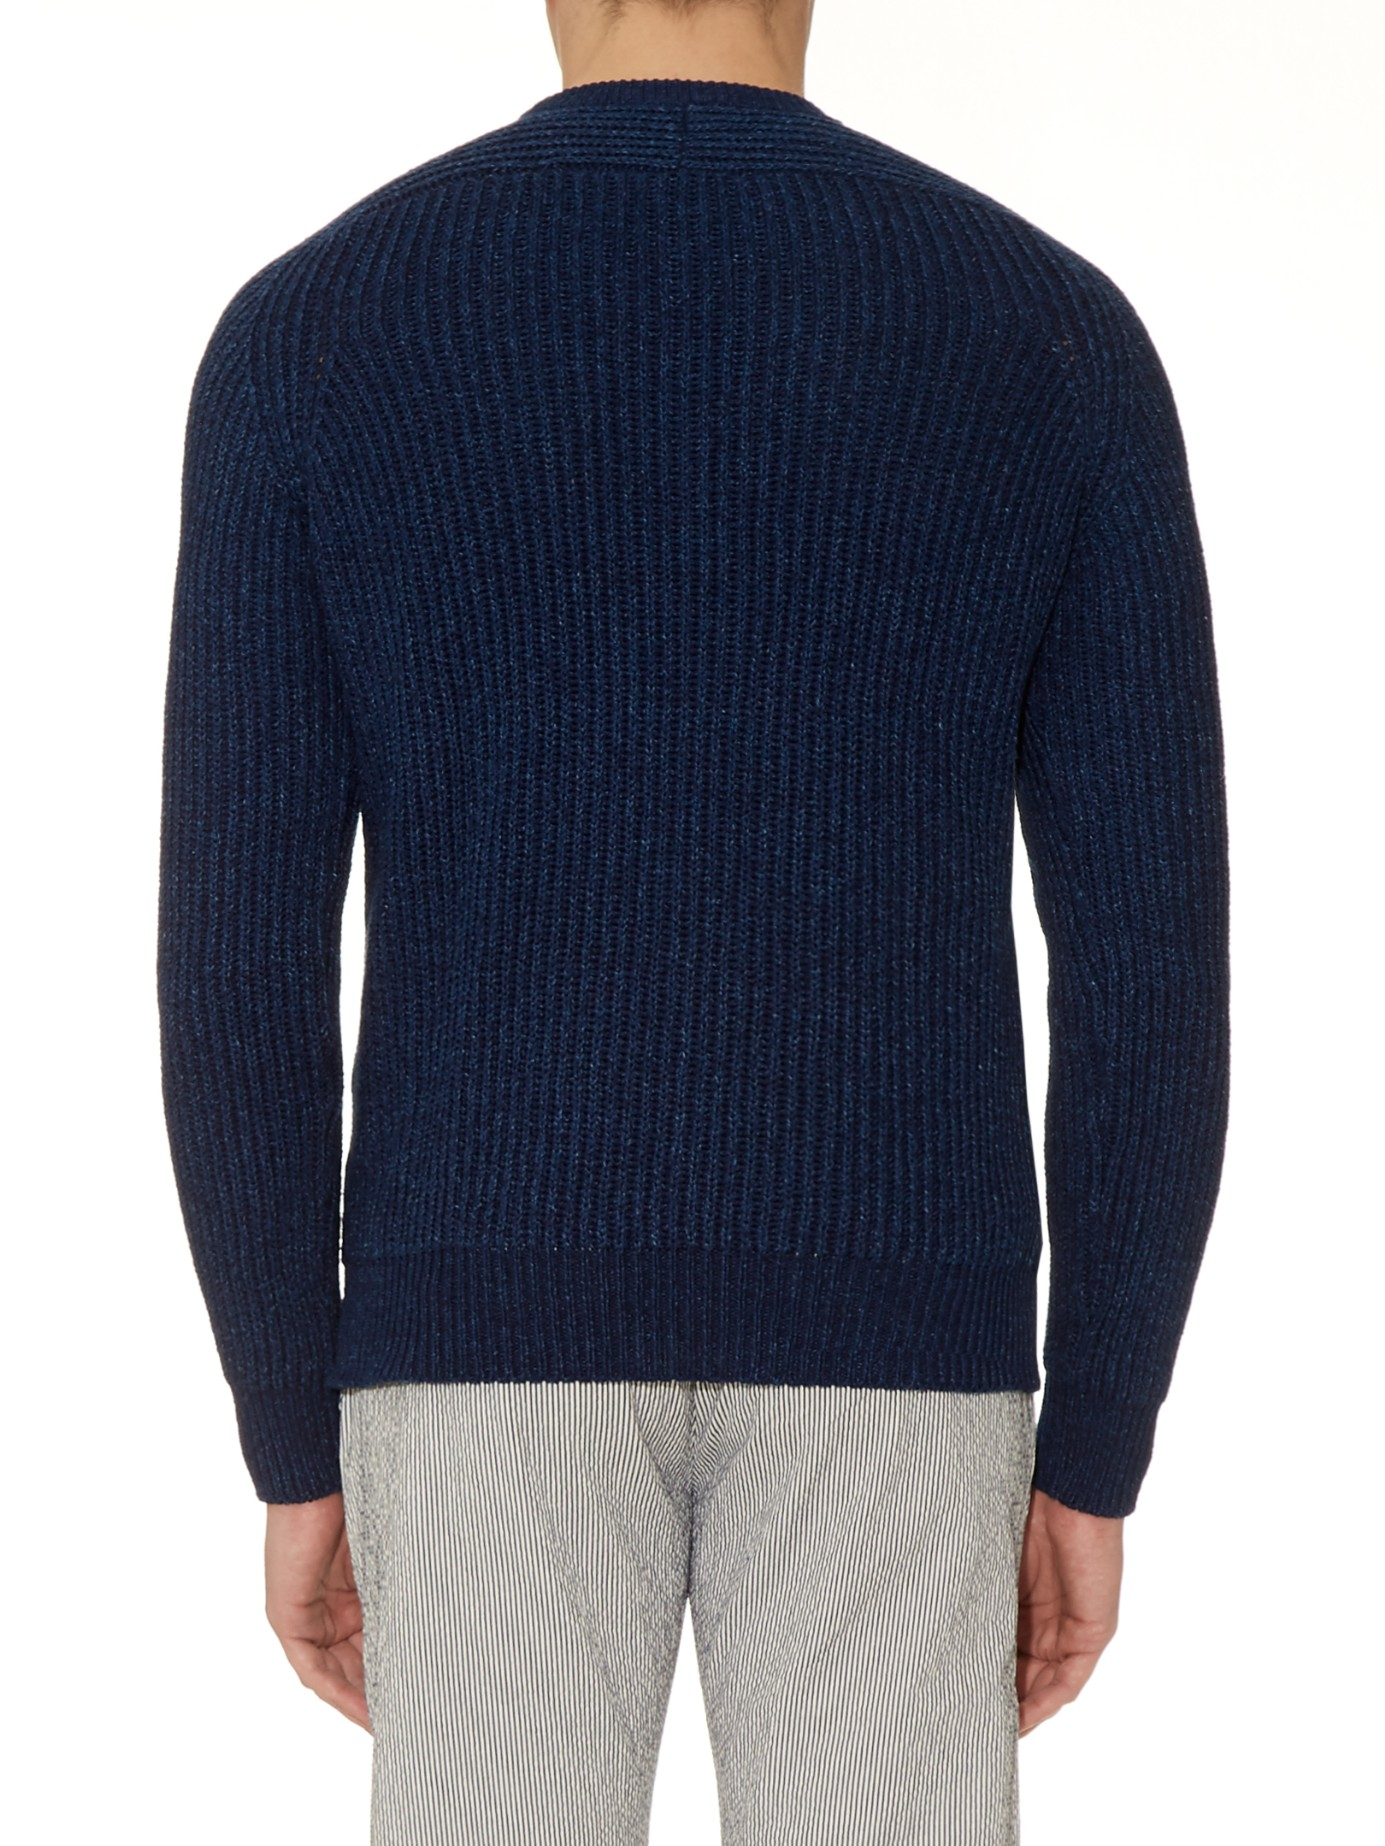 Maison kitsuné Ribbed-knit Cotton Sweater in Blue for Men | Lyst